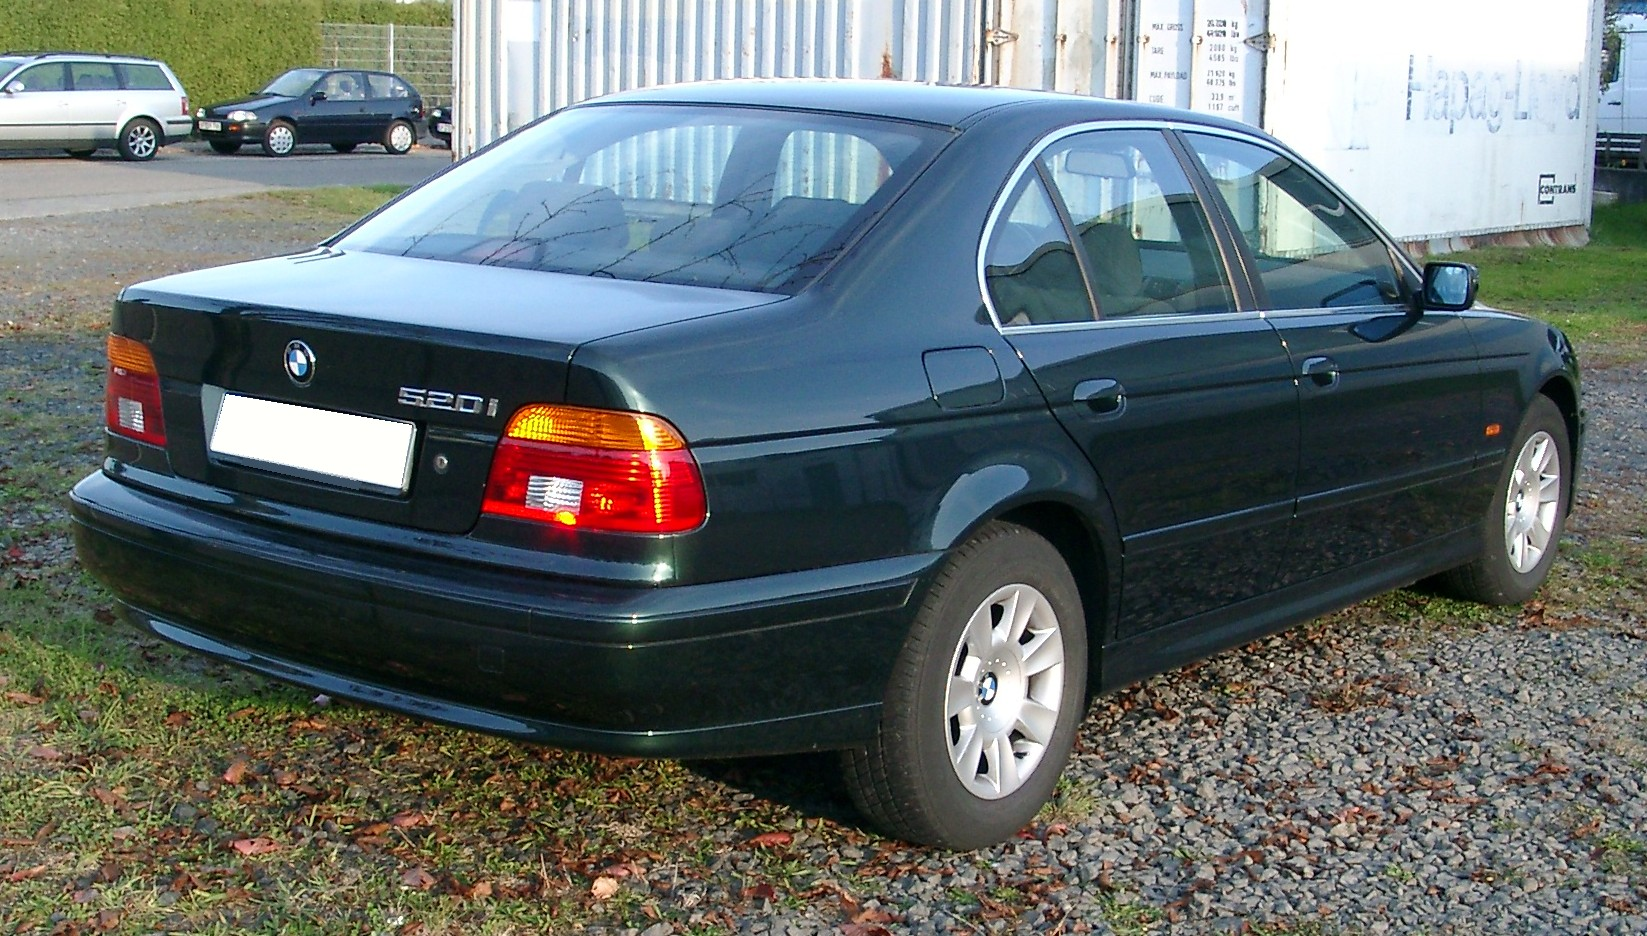 File:BMW E39 rear 20071022.jpg - Wikimedia Commons